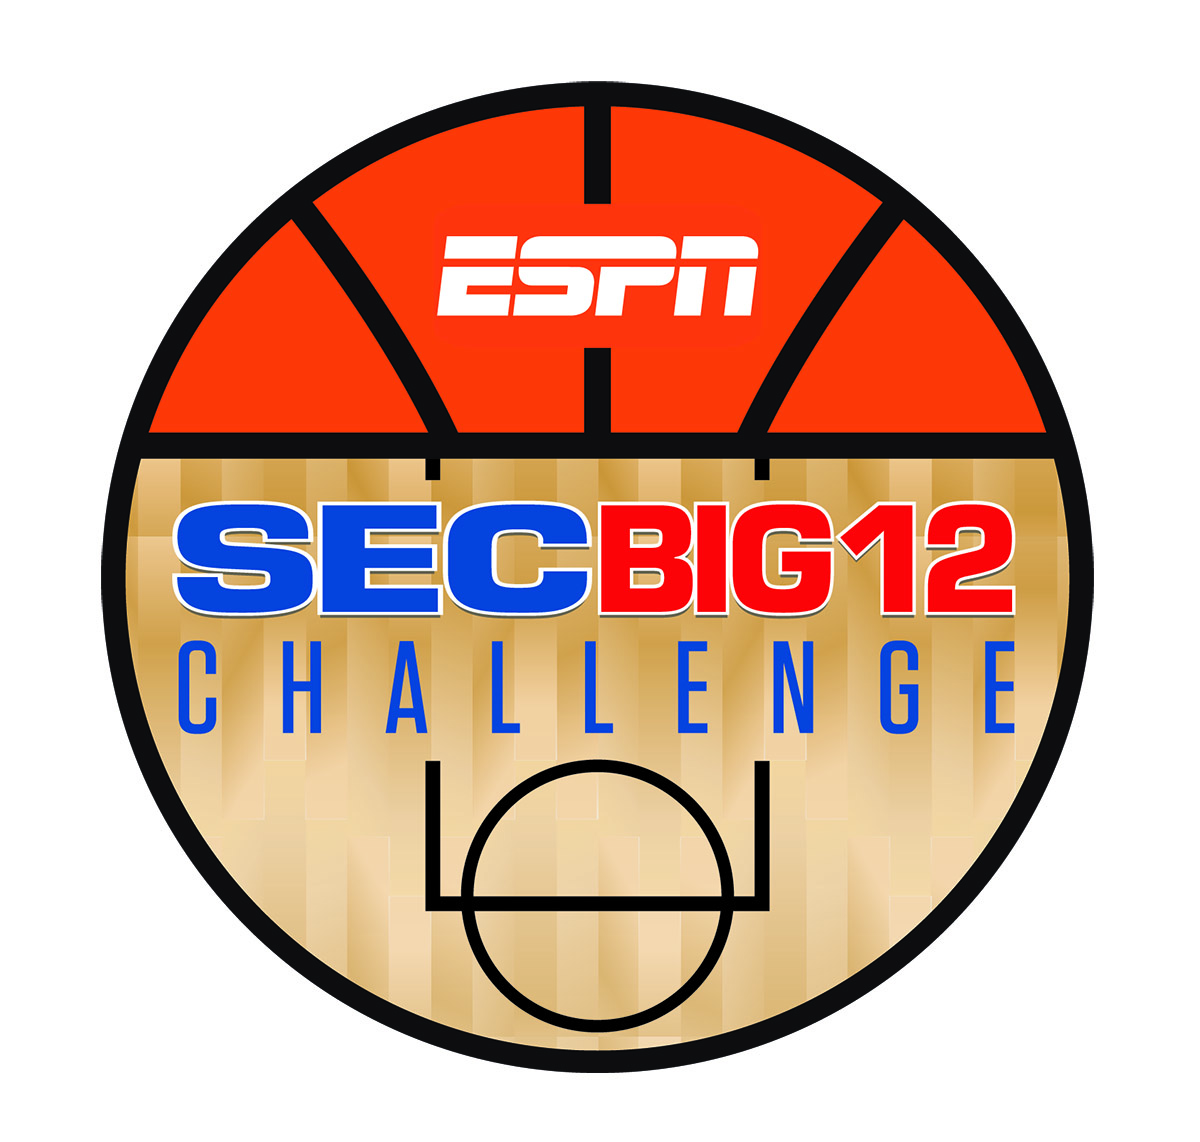 BIG 12 SEC Challenge Color Positive